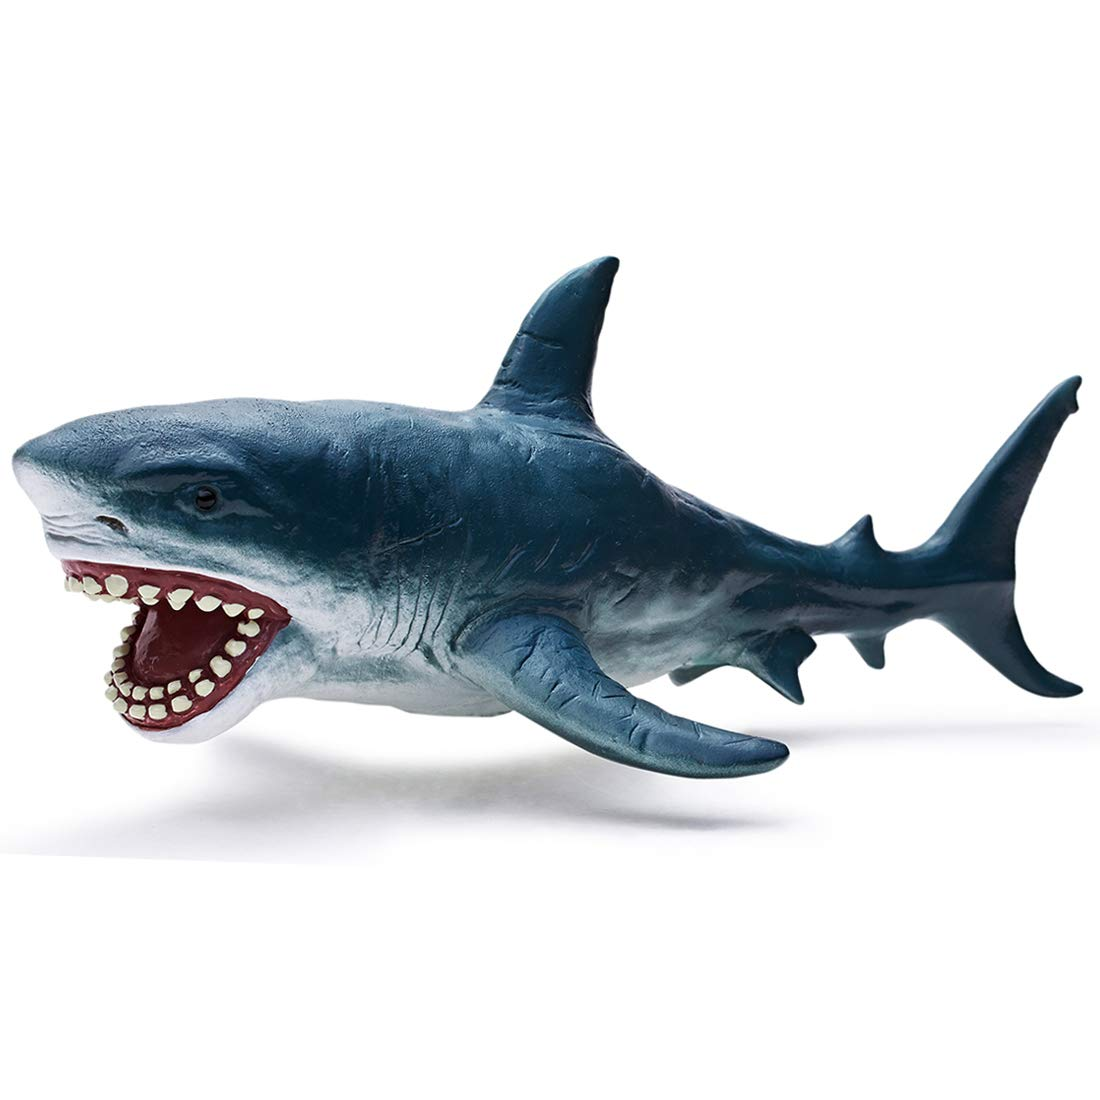 RECUR Toys Great White Shark Figure Toys, Megladon Shark, Hand-Painted Skin Texture Shark Figurine Collection 10.2inch - Replica 1:20 Scale Realistic Ocean Shark Replica, Ideal for Collectors, Ages 3+